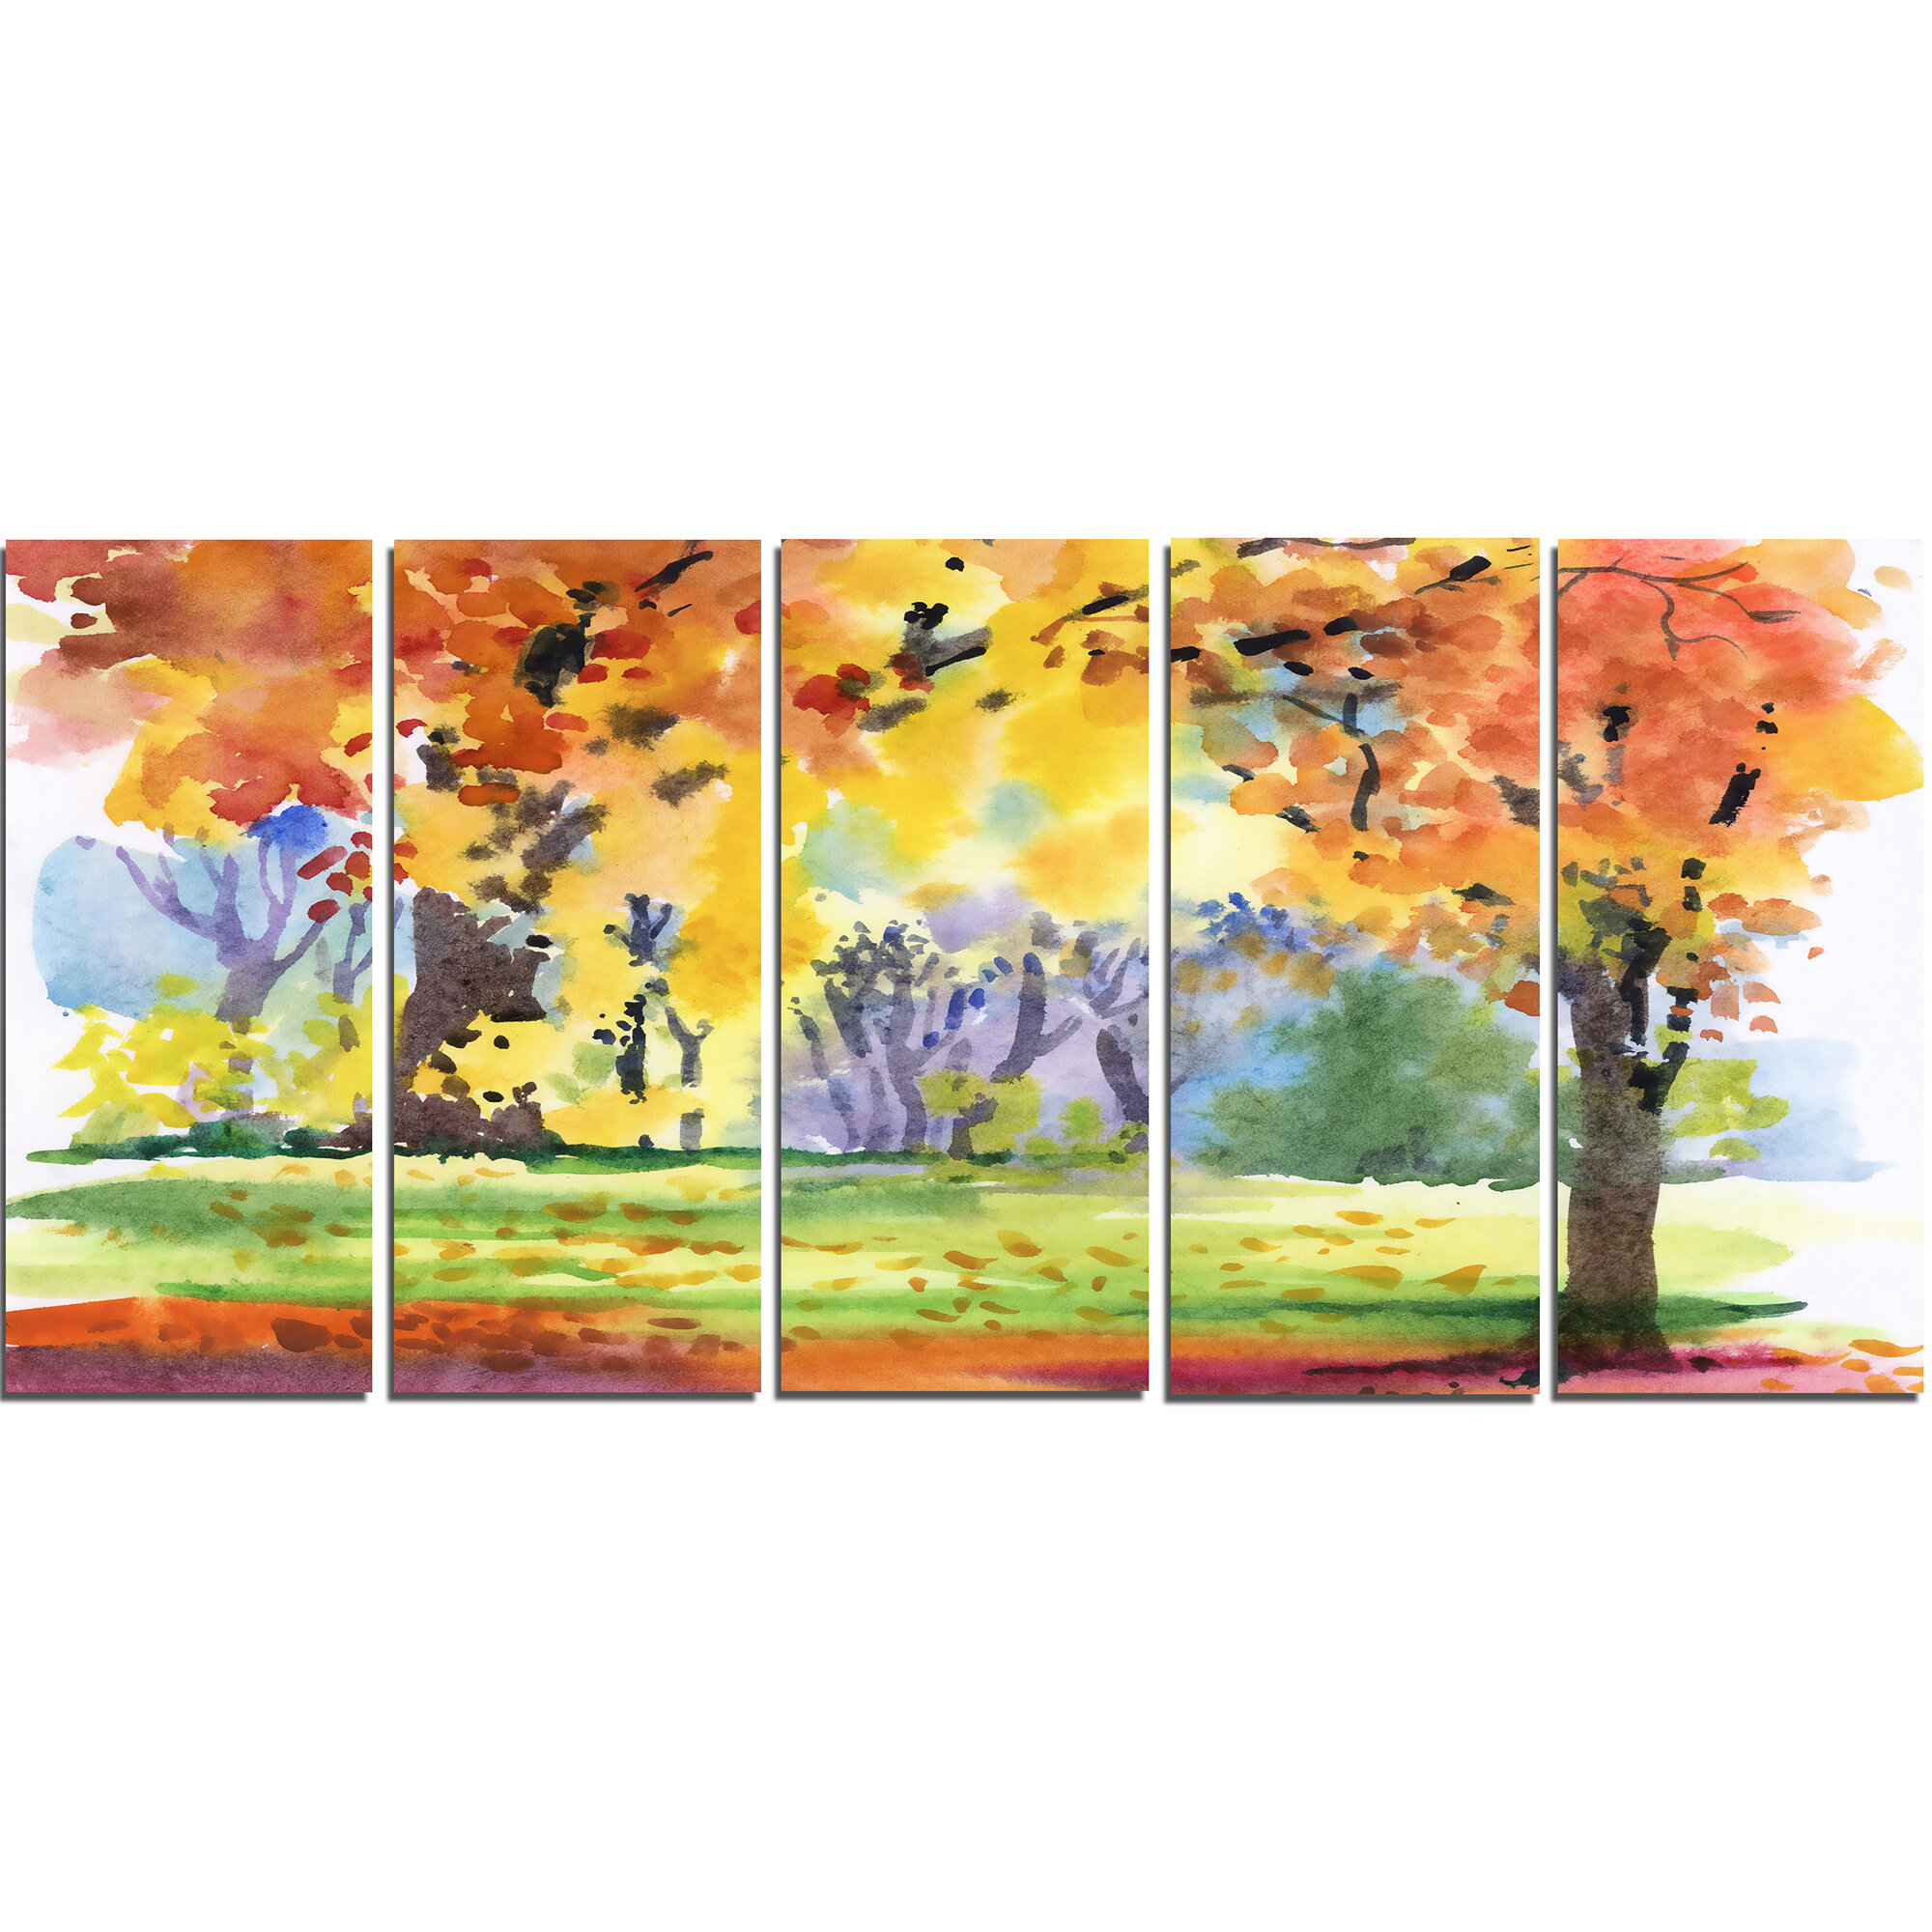 DesignArt Autumn Park Yellow Trees 5 Piece Wall Art on Wrapped ...